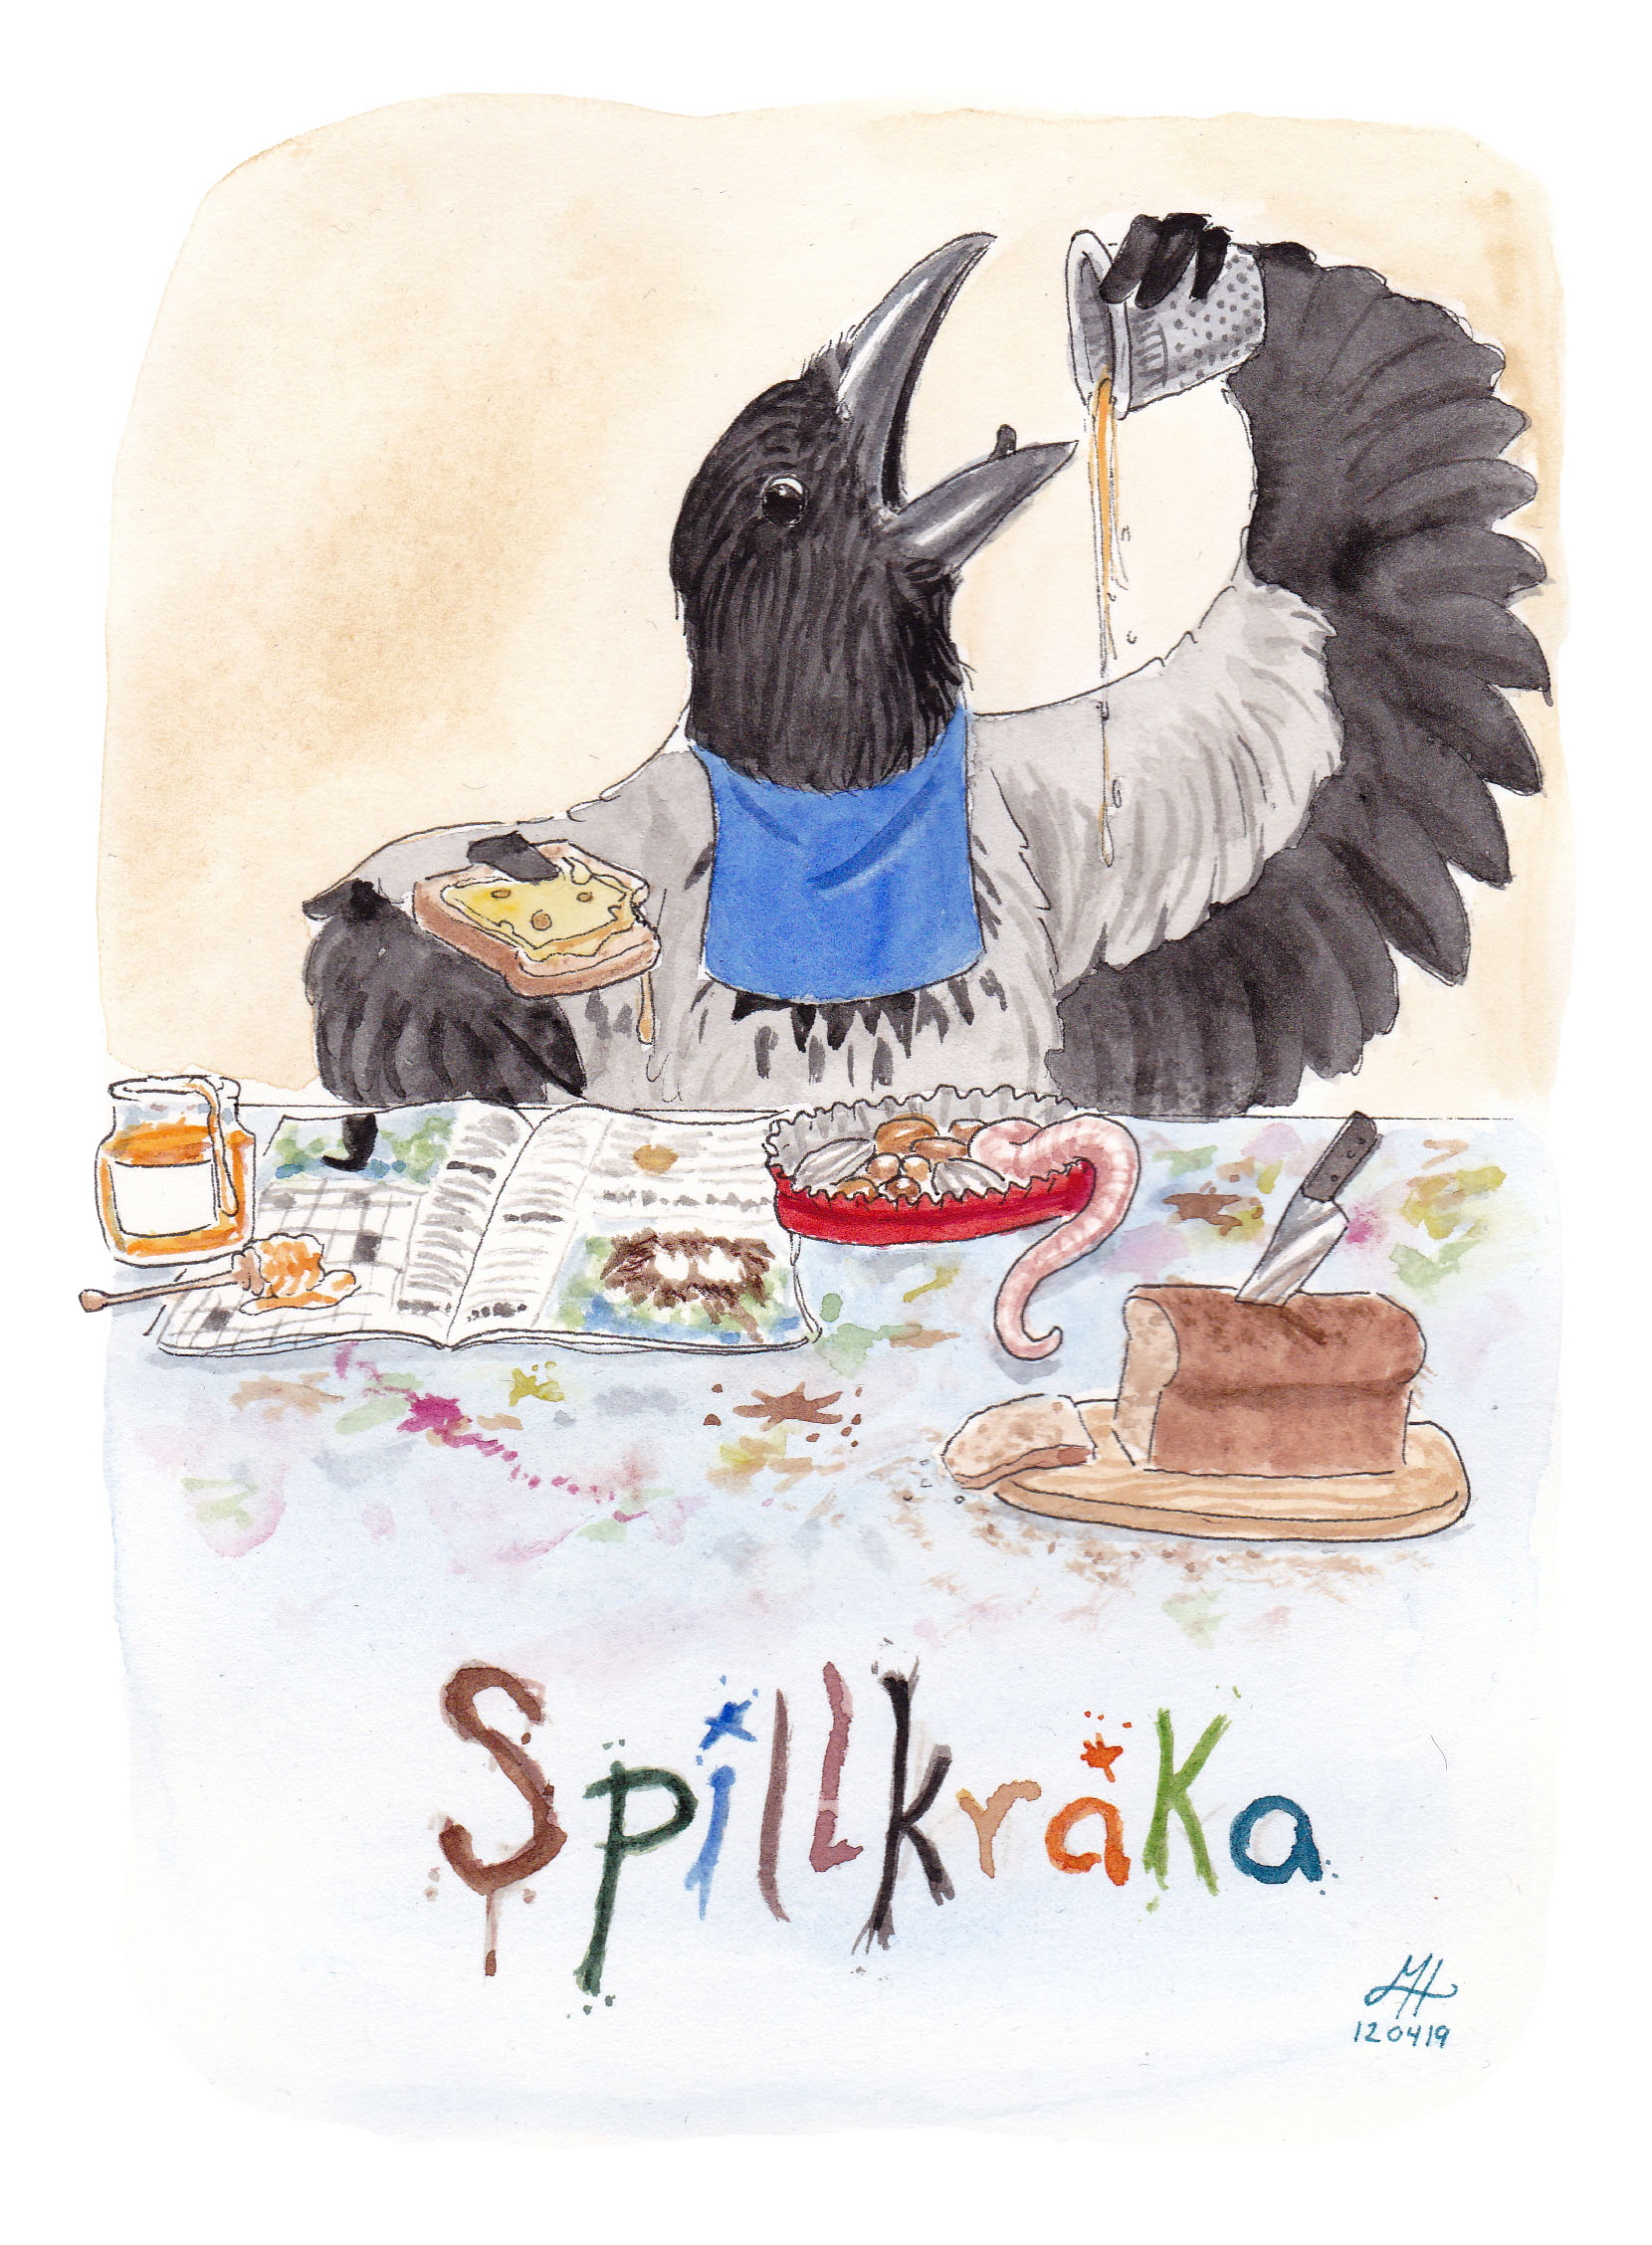 spillkråka illustration ordvits